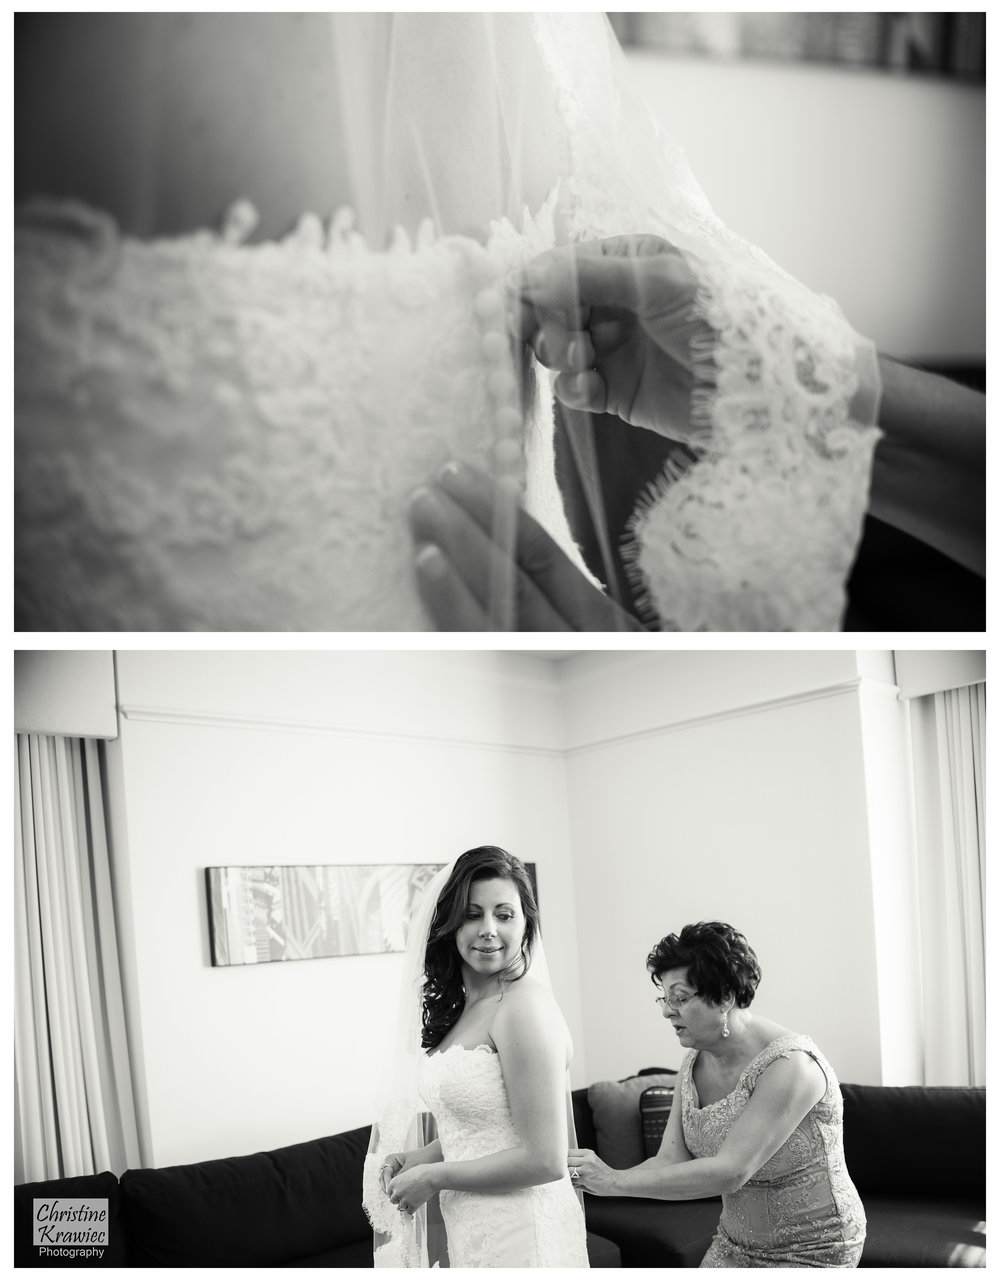 It's such a special moment between a bride and her mother while getting dressed